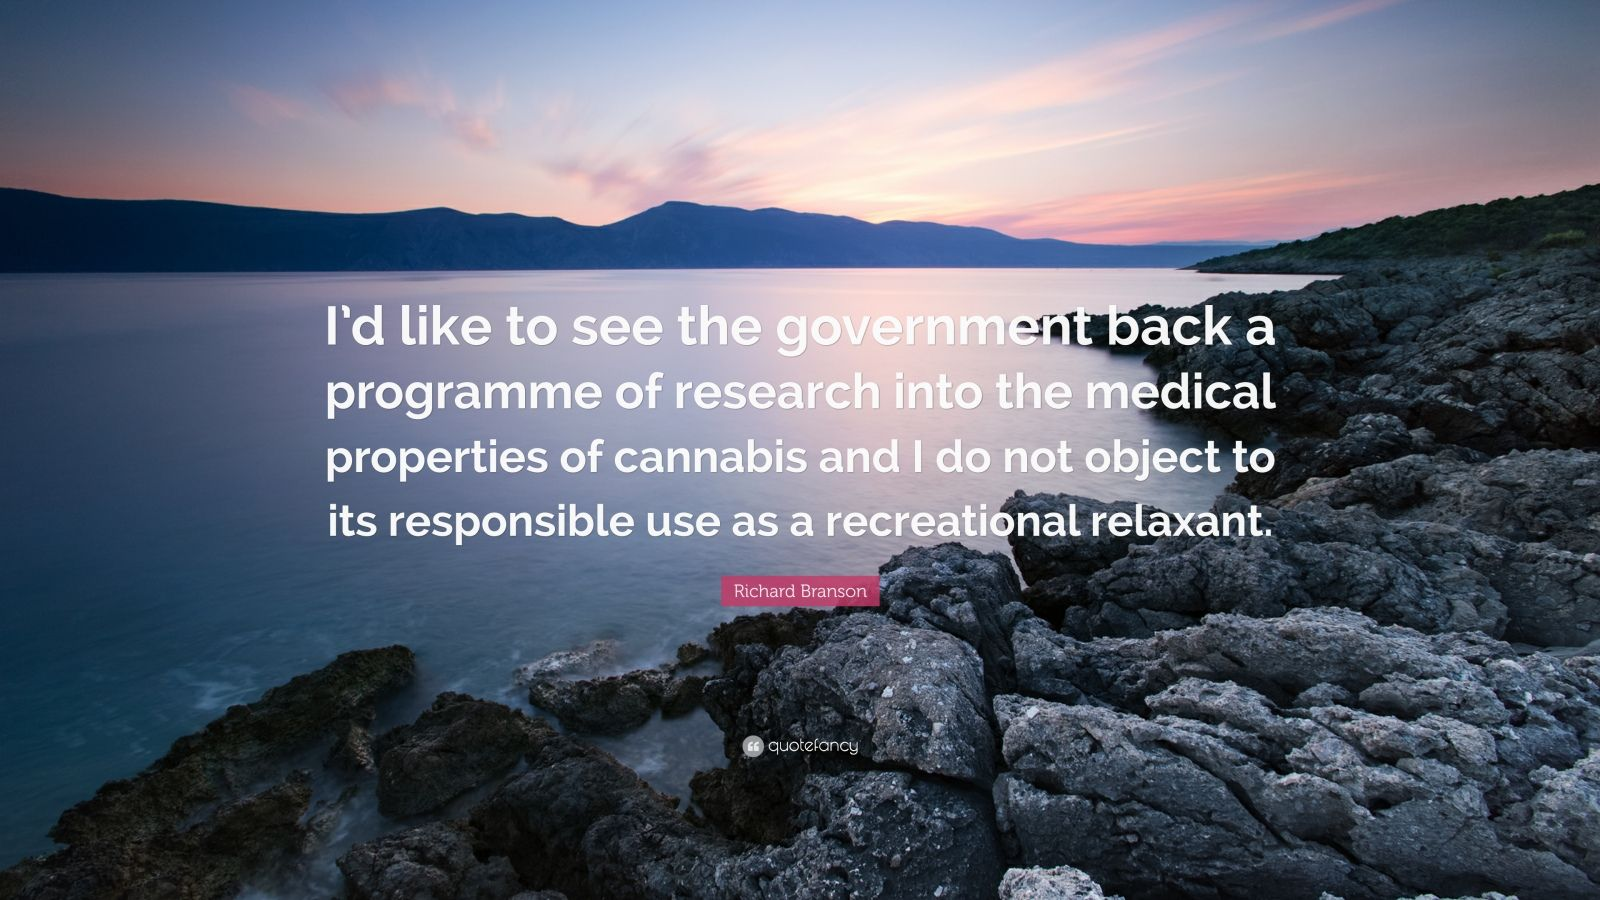 """Richard Branson Quote: """"I'd like to see the government back a programme of research into the medical properties of cannabis and I do not object to its responsible use as a recreational relaxant."""""""